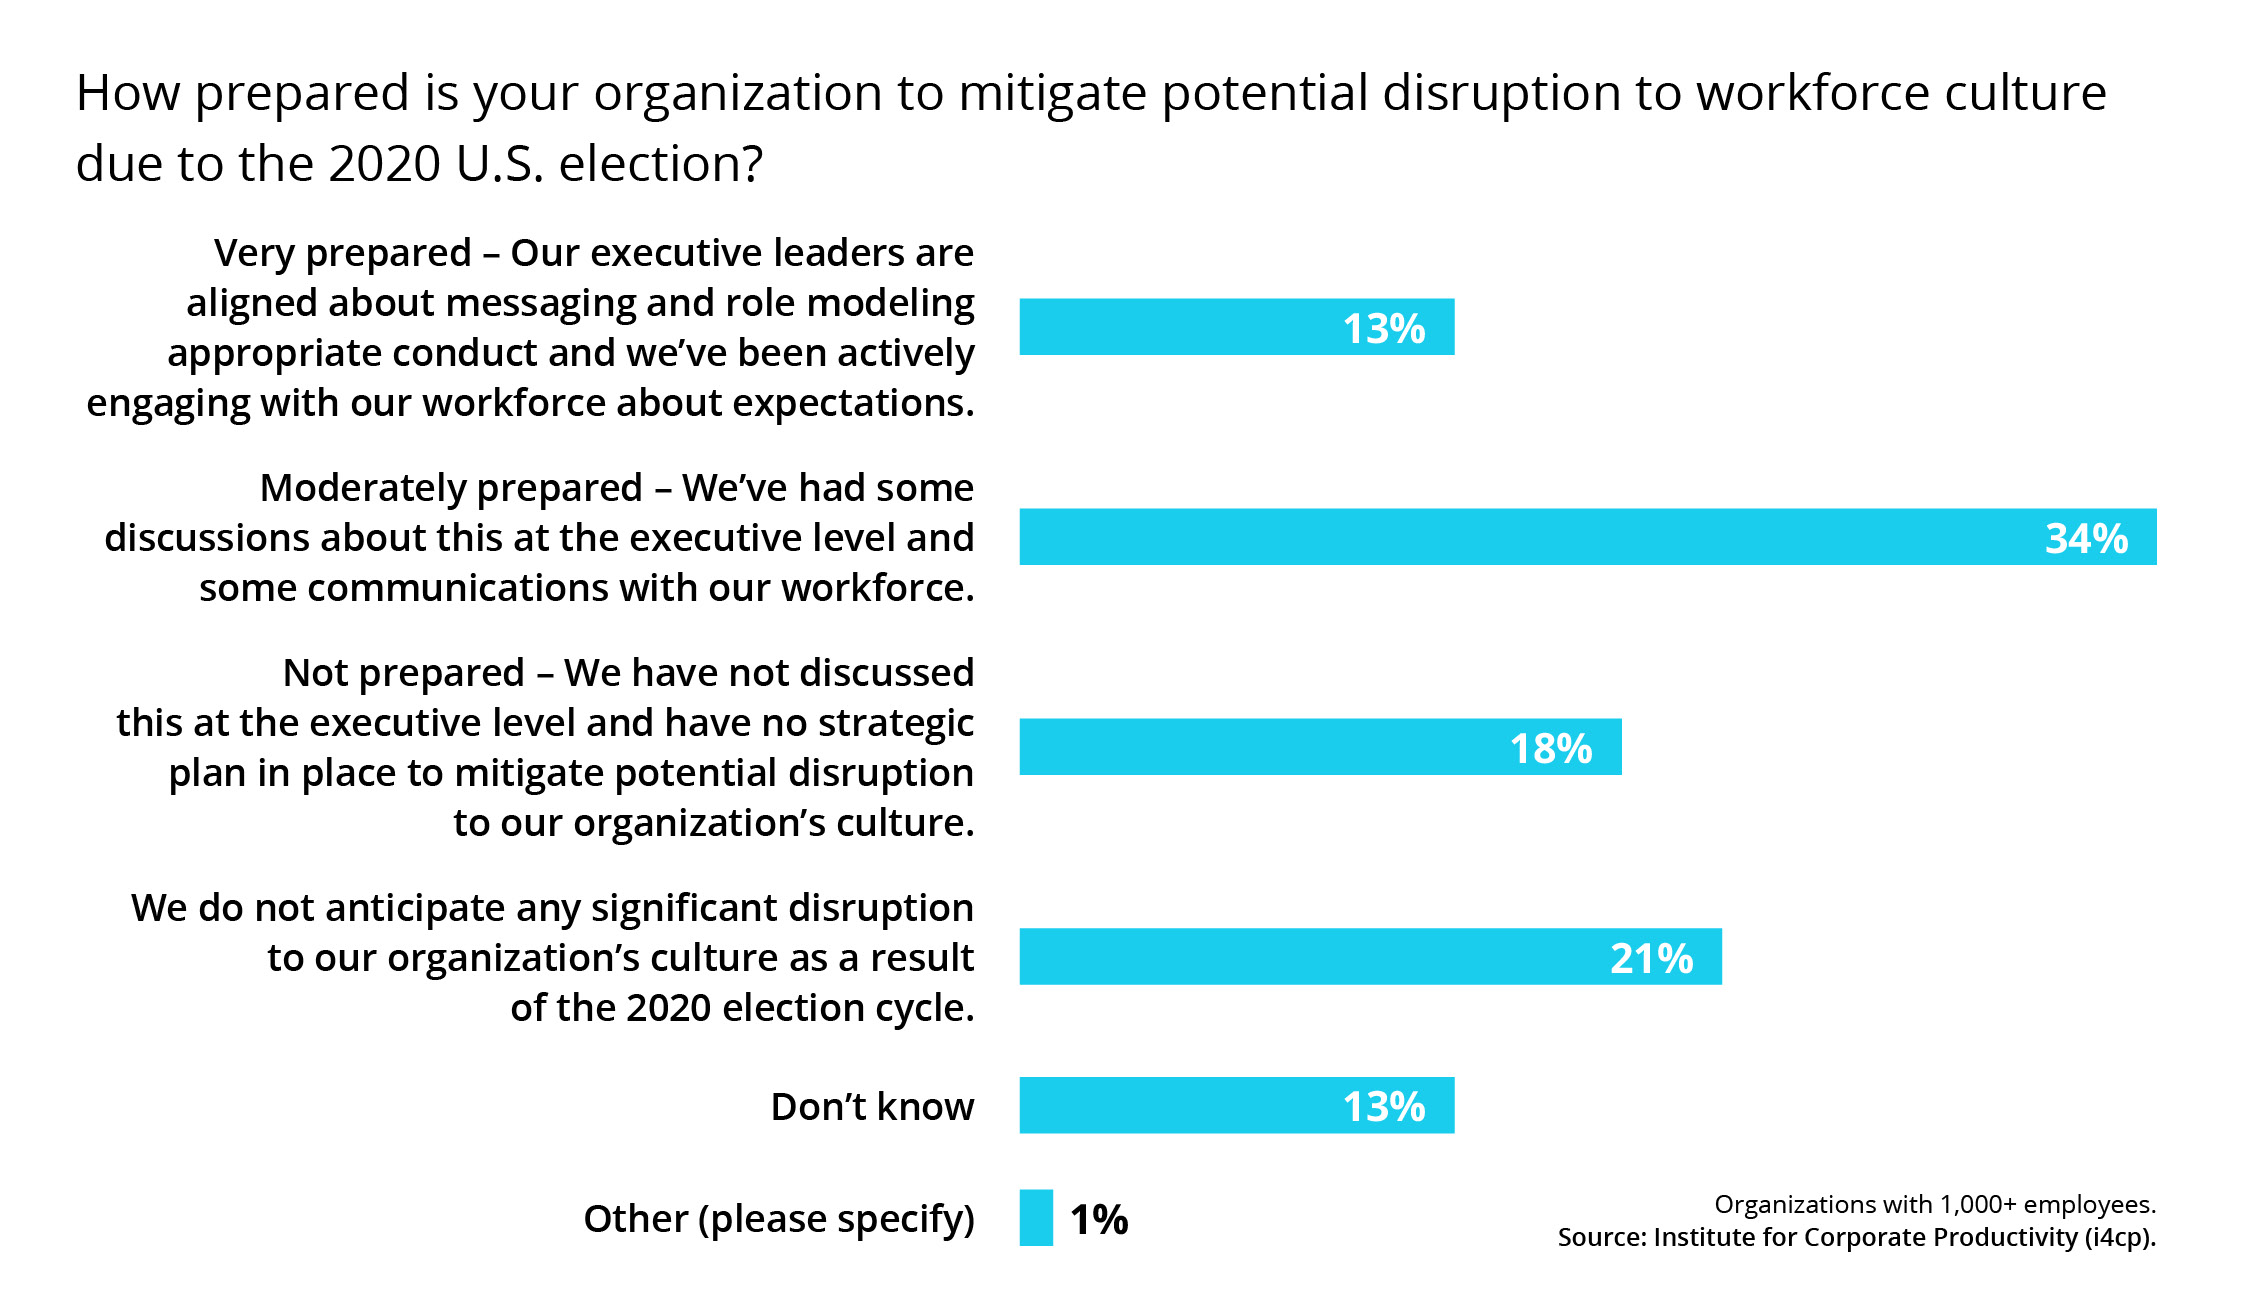 How prepared is your organization to mitigate potential disruption to workforce culture